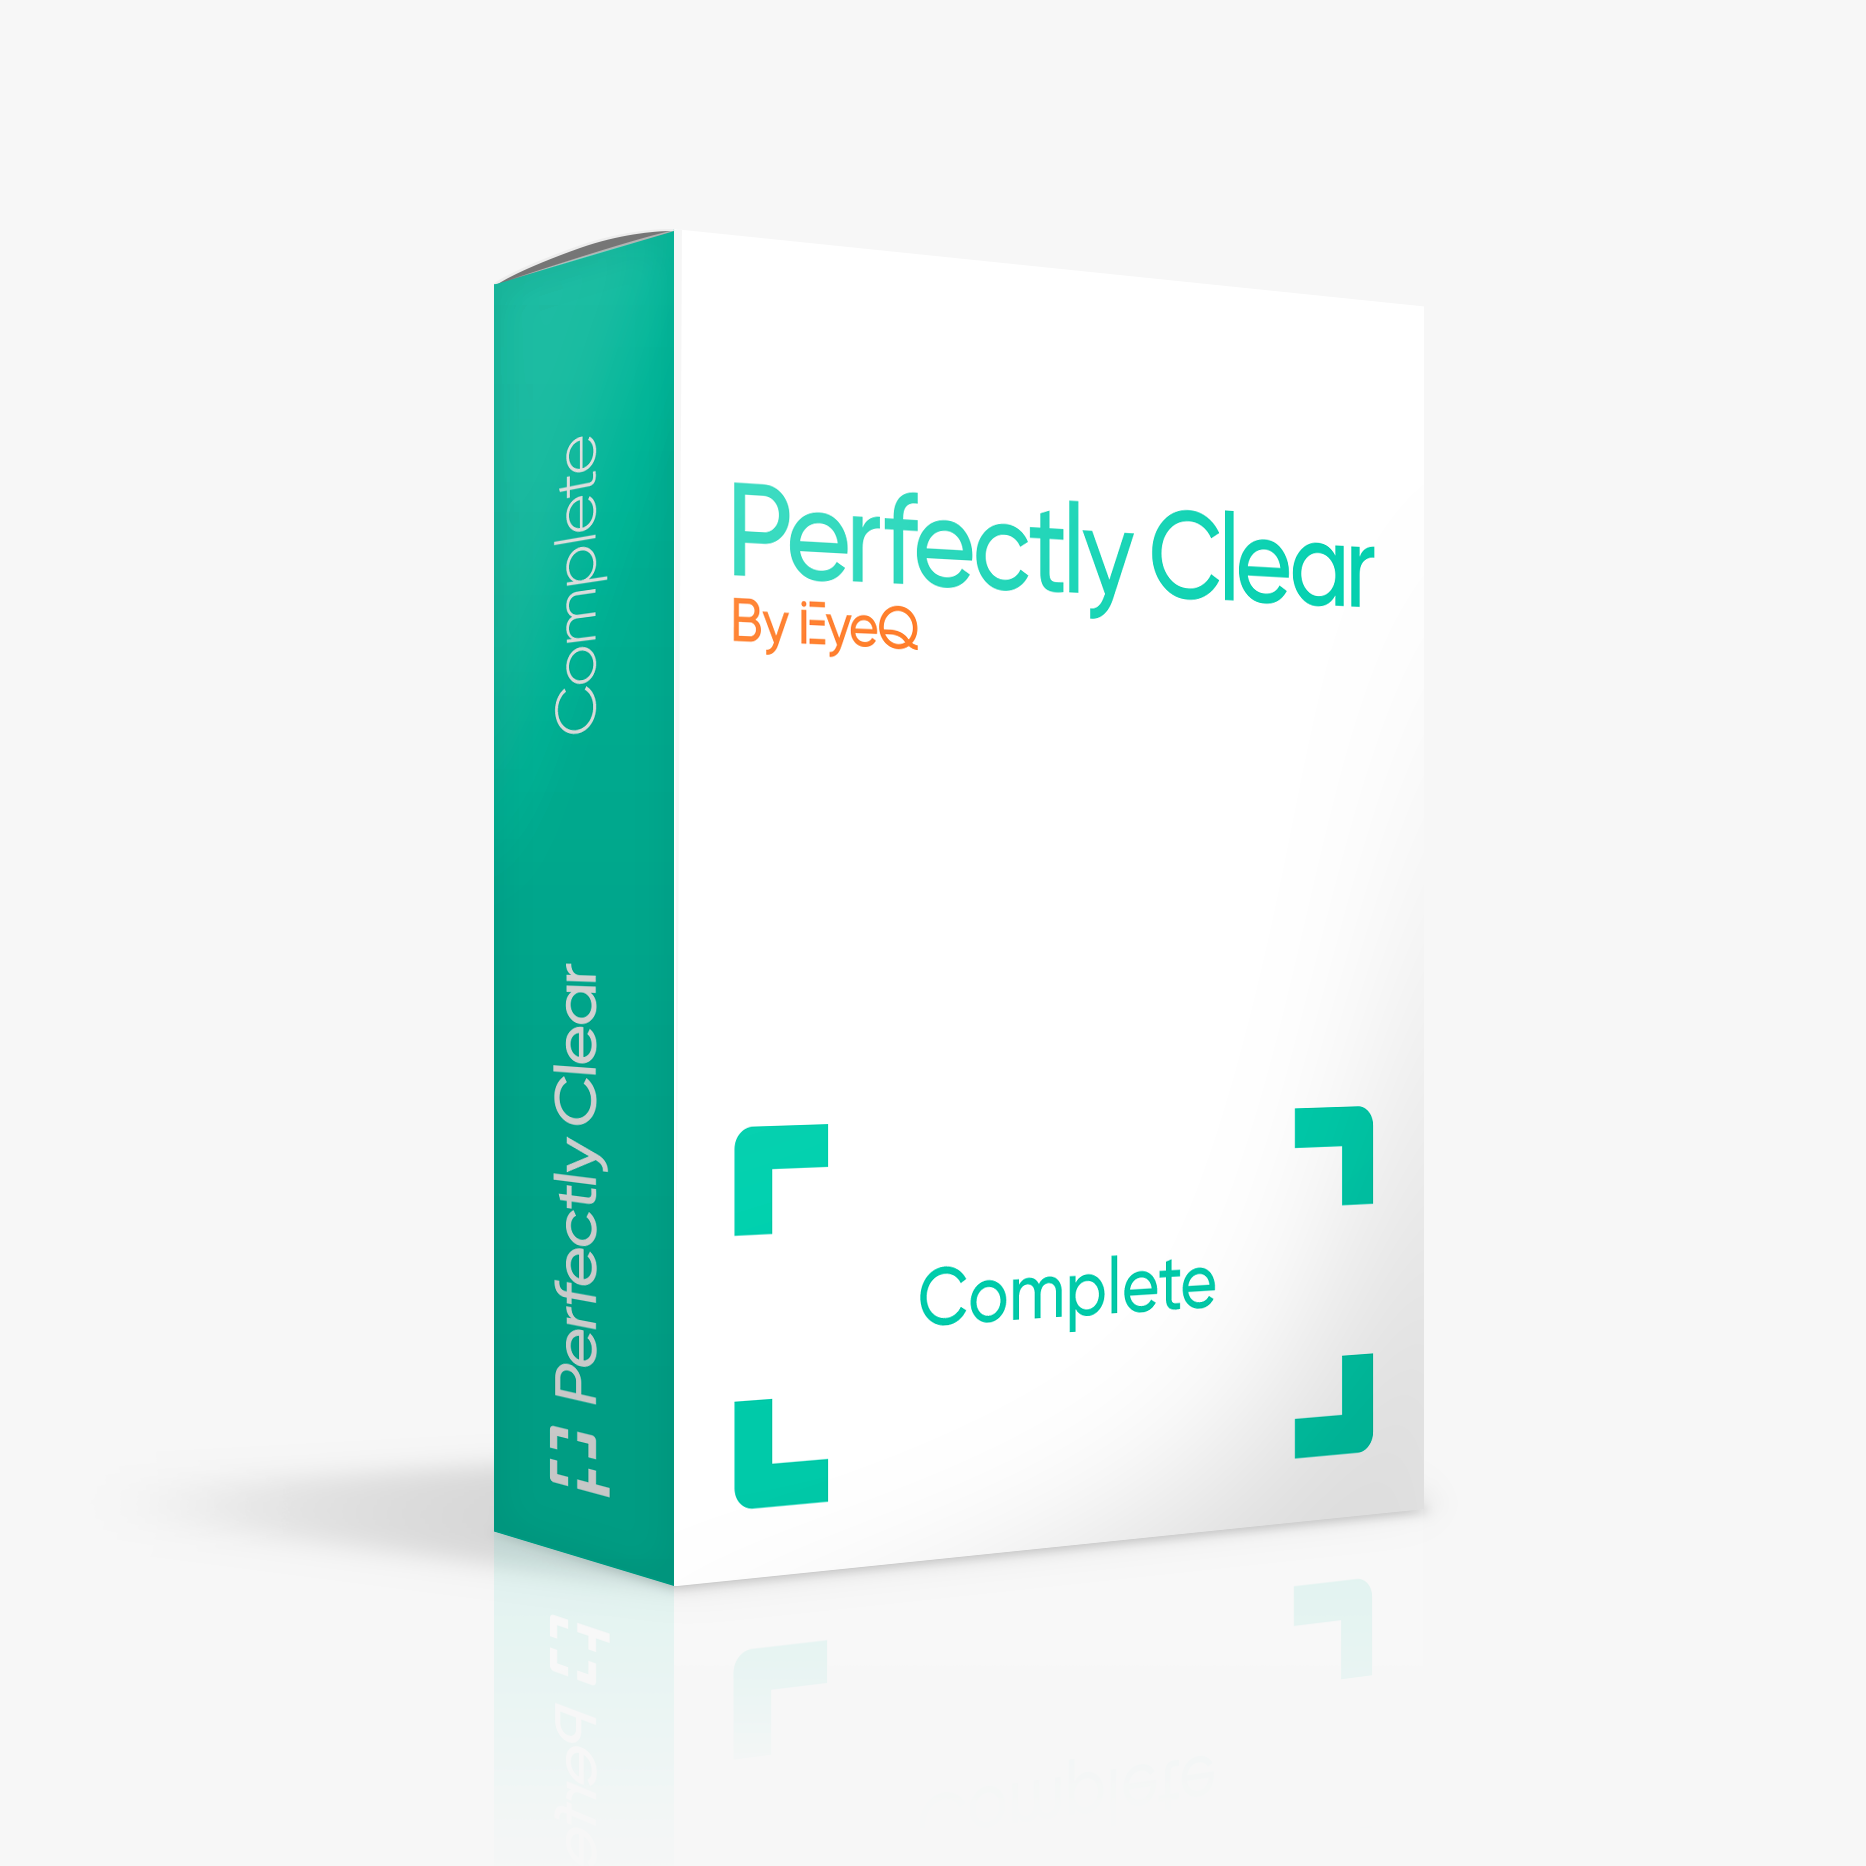 Perfectly Clear - The Award-Winning, Photo-Editing Software